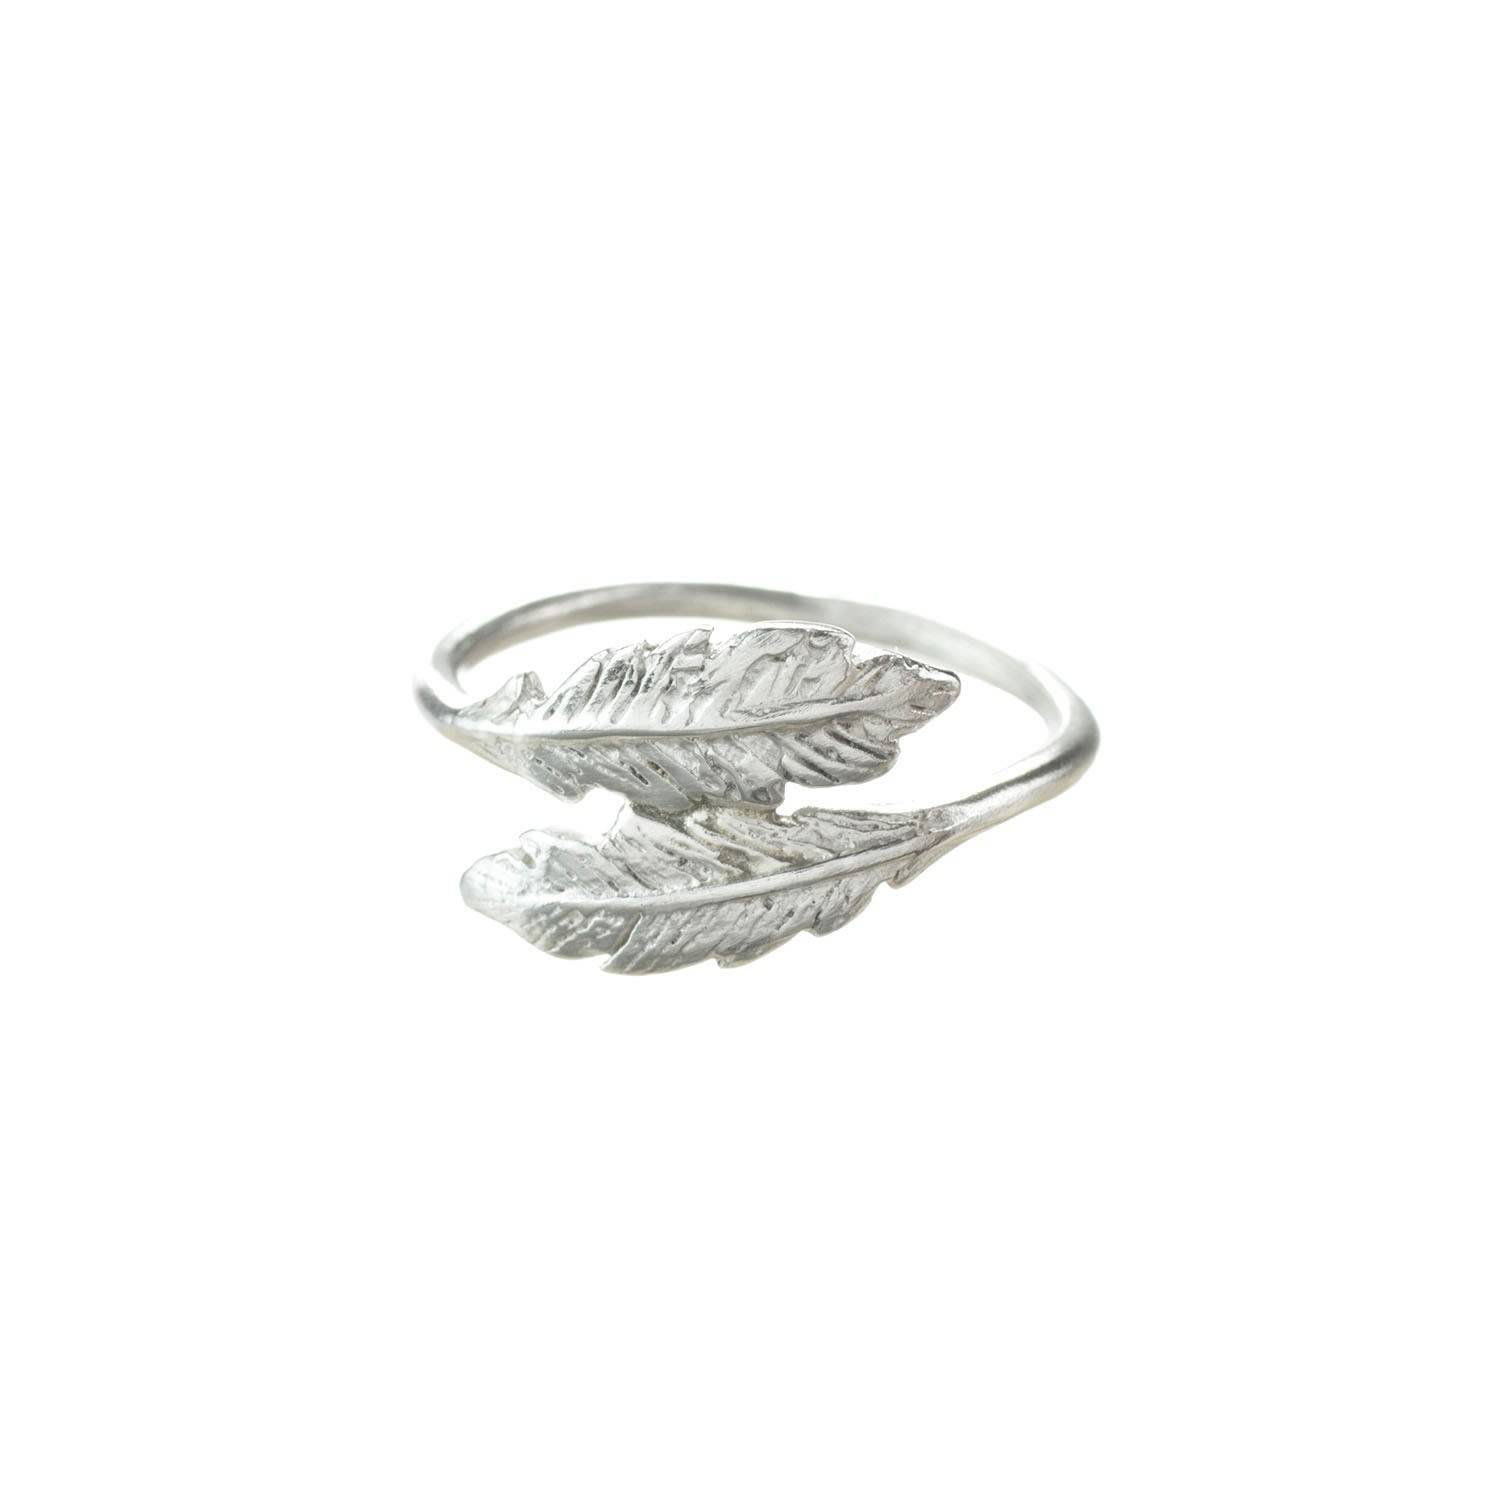 Lucy Flint Jewellery - Feather Ring Sterling Silver